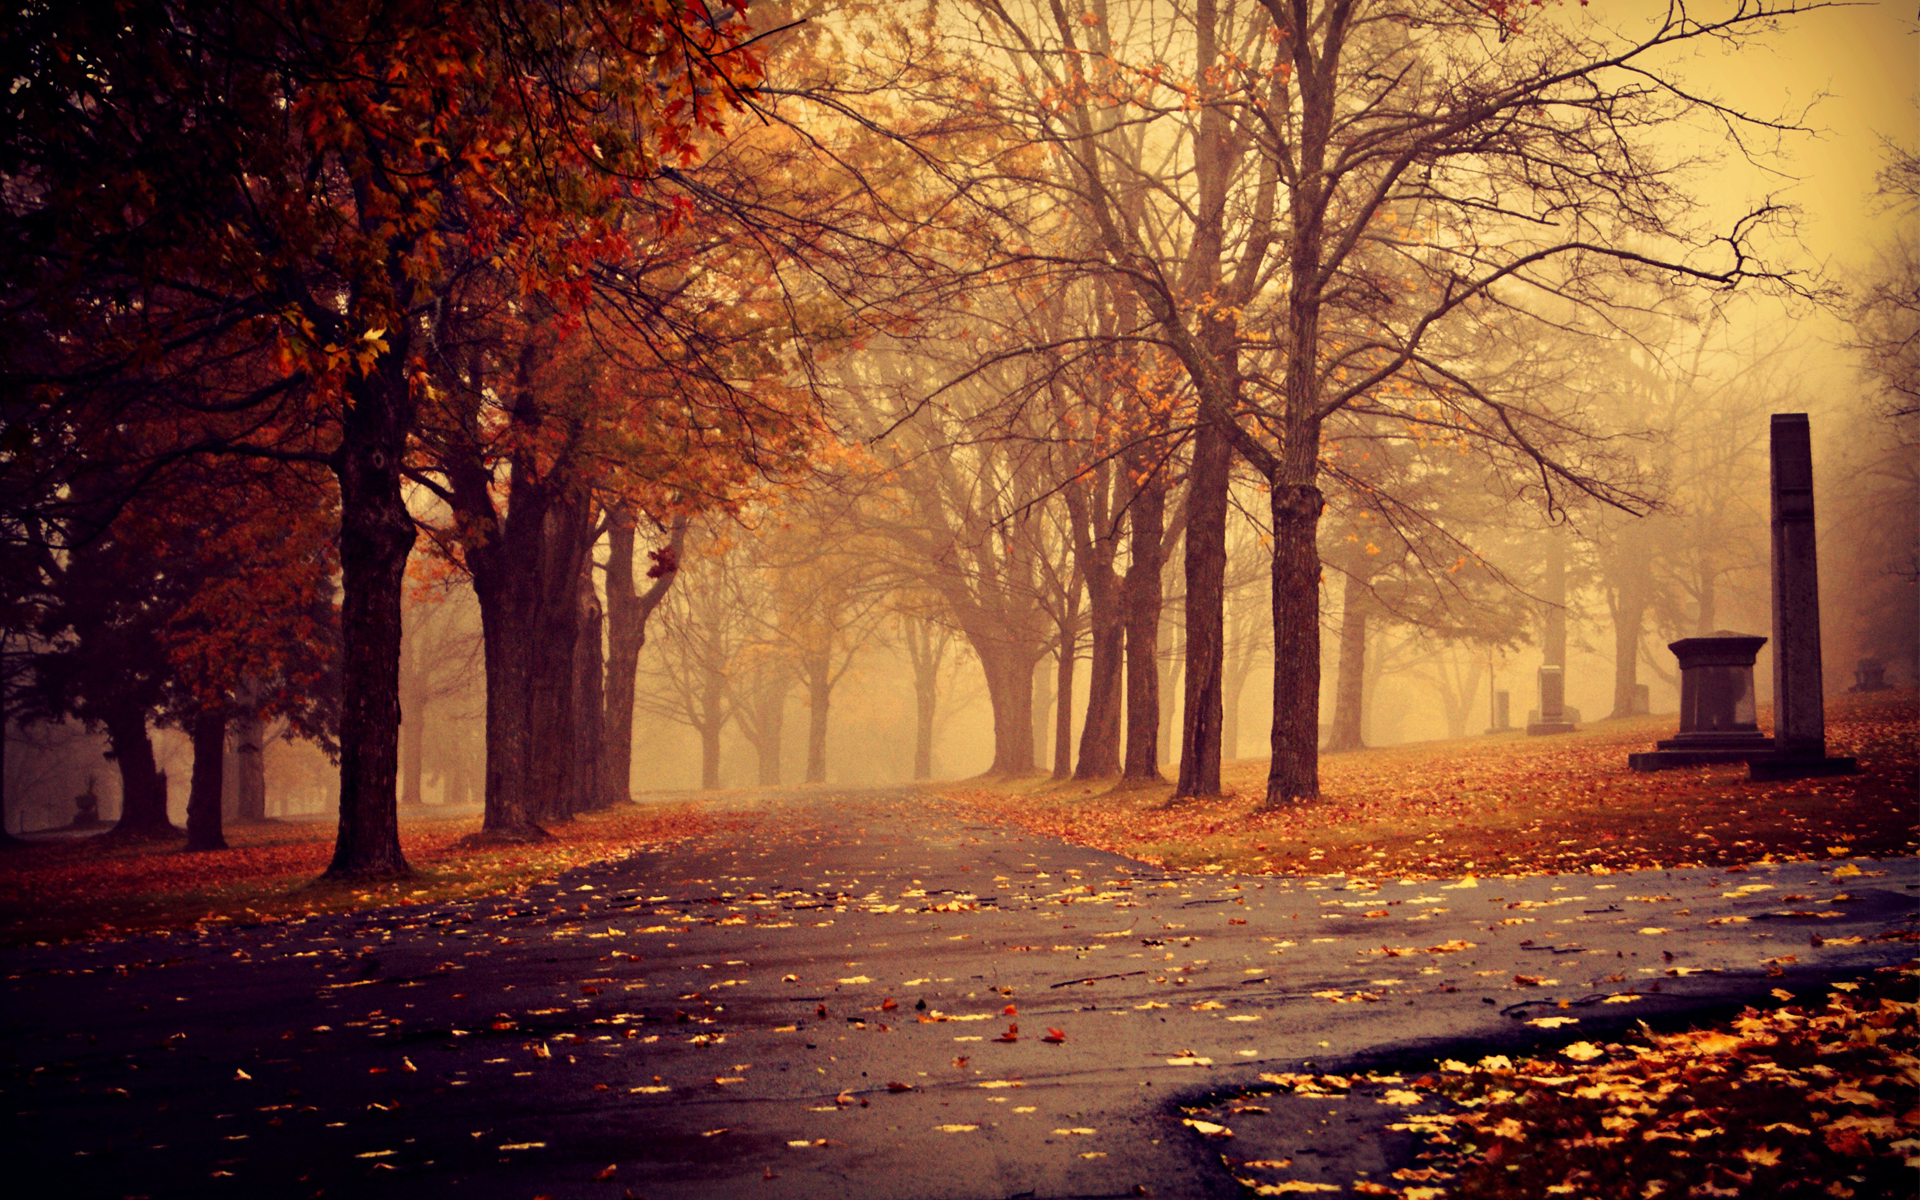 autumn-trees-park-paths-leaves-clouds-fog-city